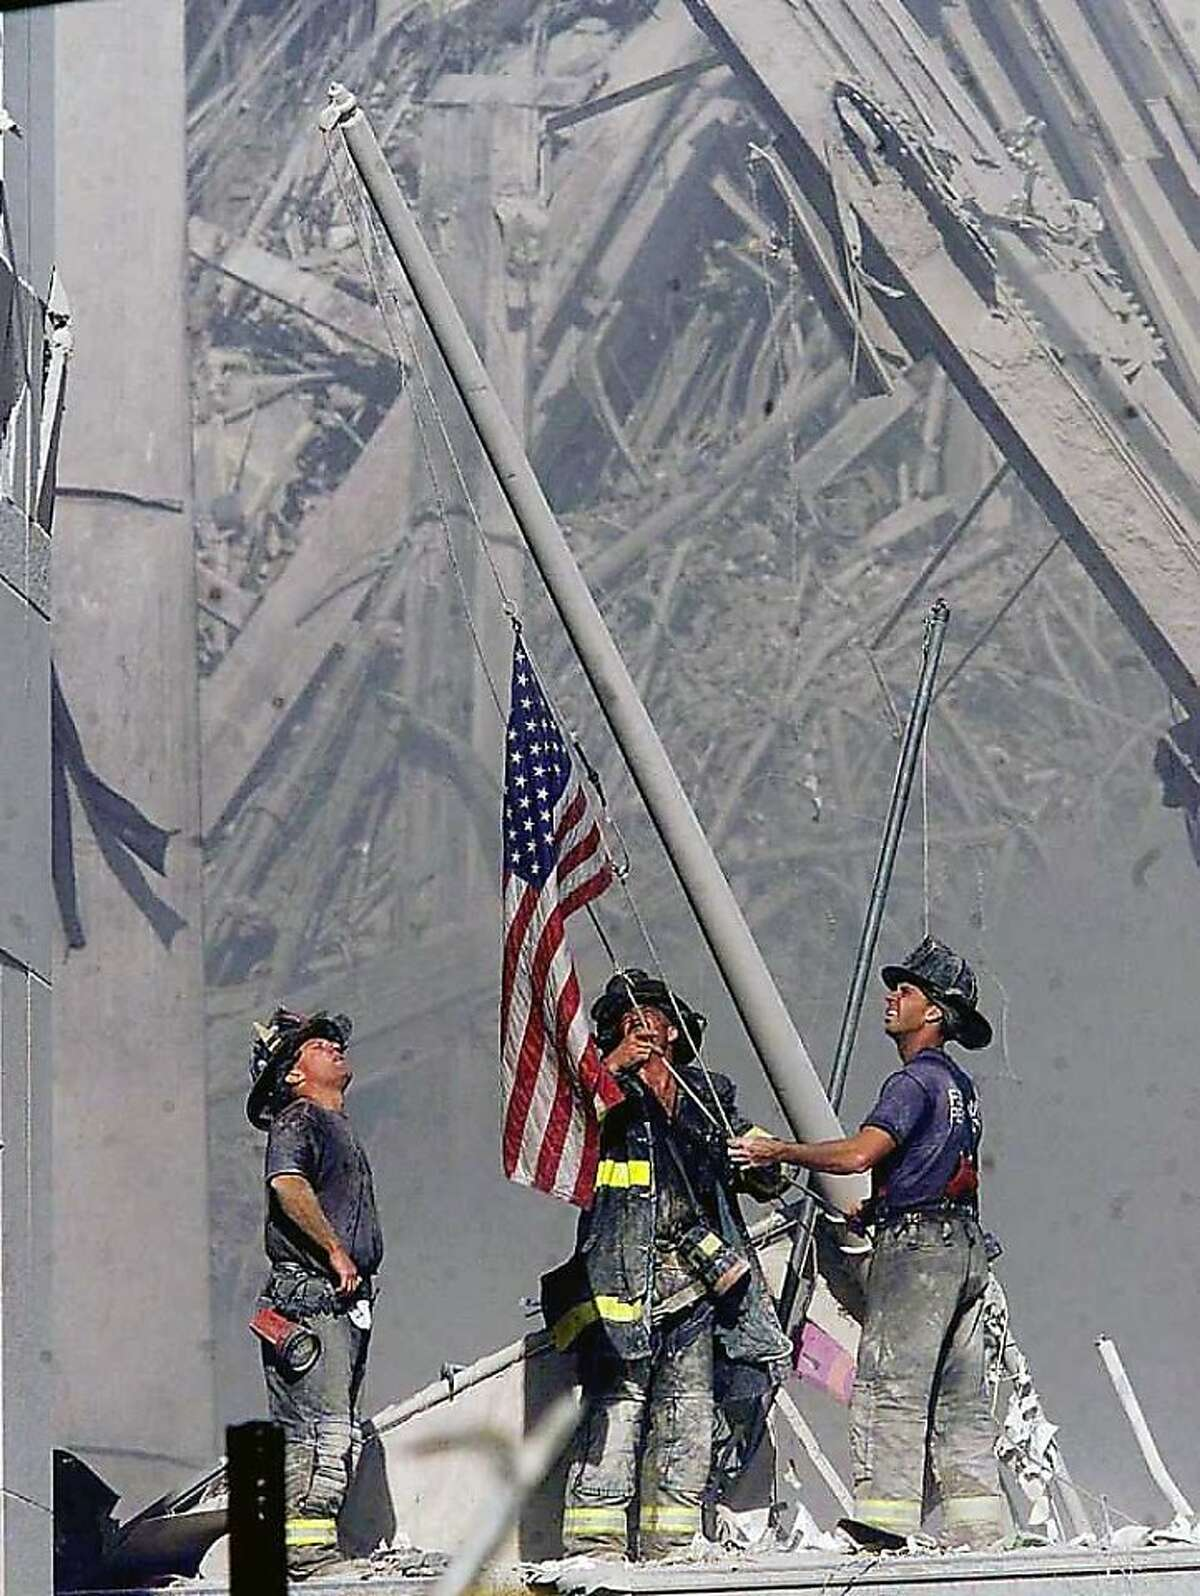 Brooklyn firefighters George Johnson, left, of ladder 157, Dan McWilliams, center, of ladder 157, and Billy Eisengrein, right, of Rescue 2, raise a flag at the World Trade Center in New York, in this Sept. 11, 2001, file photo, as work at the site continues after hijackers crashed two airliners into the center. In the most devastating terrorist onslaught ever waged against the United States, knife-wielding hijackers crashed two airliners into the World Trade Center, toppling its twin 110-story towers. This year will mark the fifth anniversary of the attacks. (AP Photo/ Copyright 2001 The Record (Bergen County, NJ), Thomas E. Franklin, Staff Photographer/FILE) MANDATORY CREDIT NO SALES ONLINE OUT